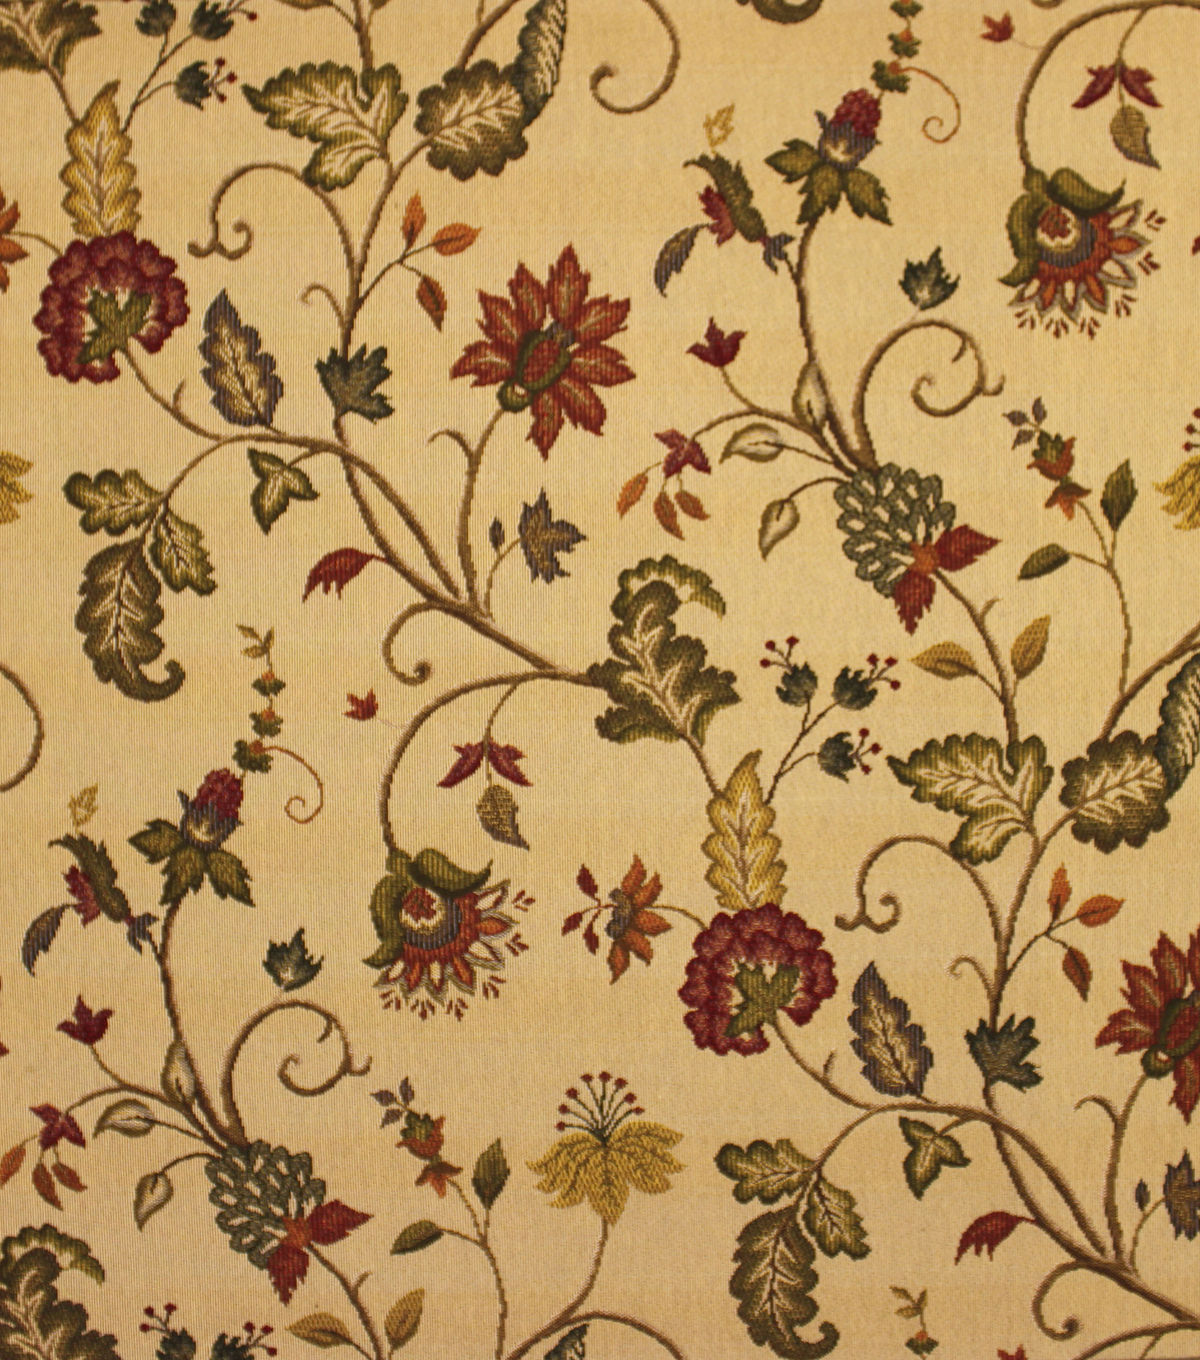 Home Decor 8\u0022x8\u0022 Fabric Swatch-Upholstery Fabric Barrow M5872-5145 Hearth